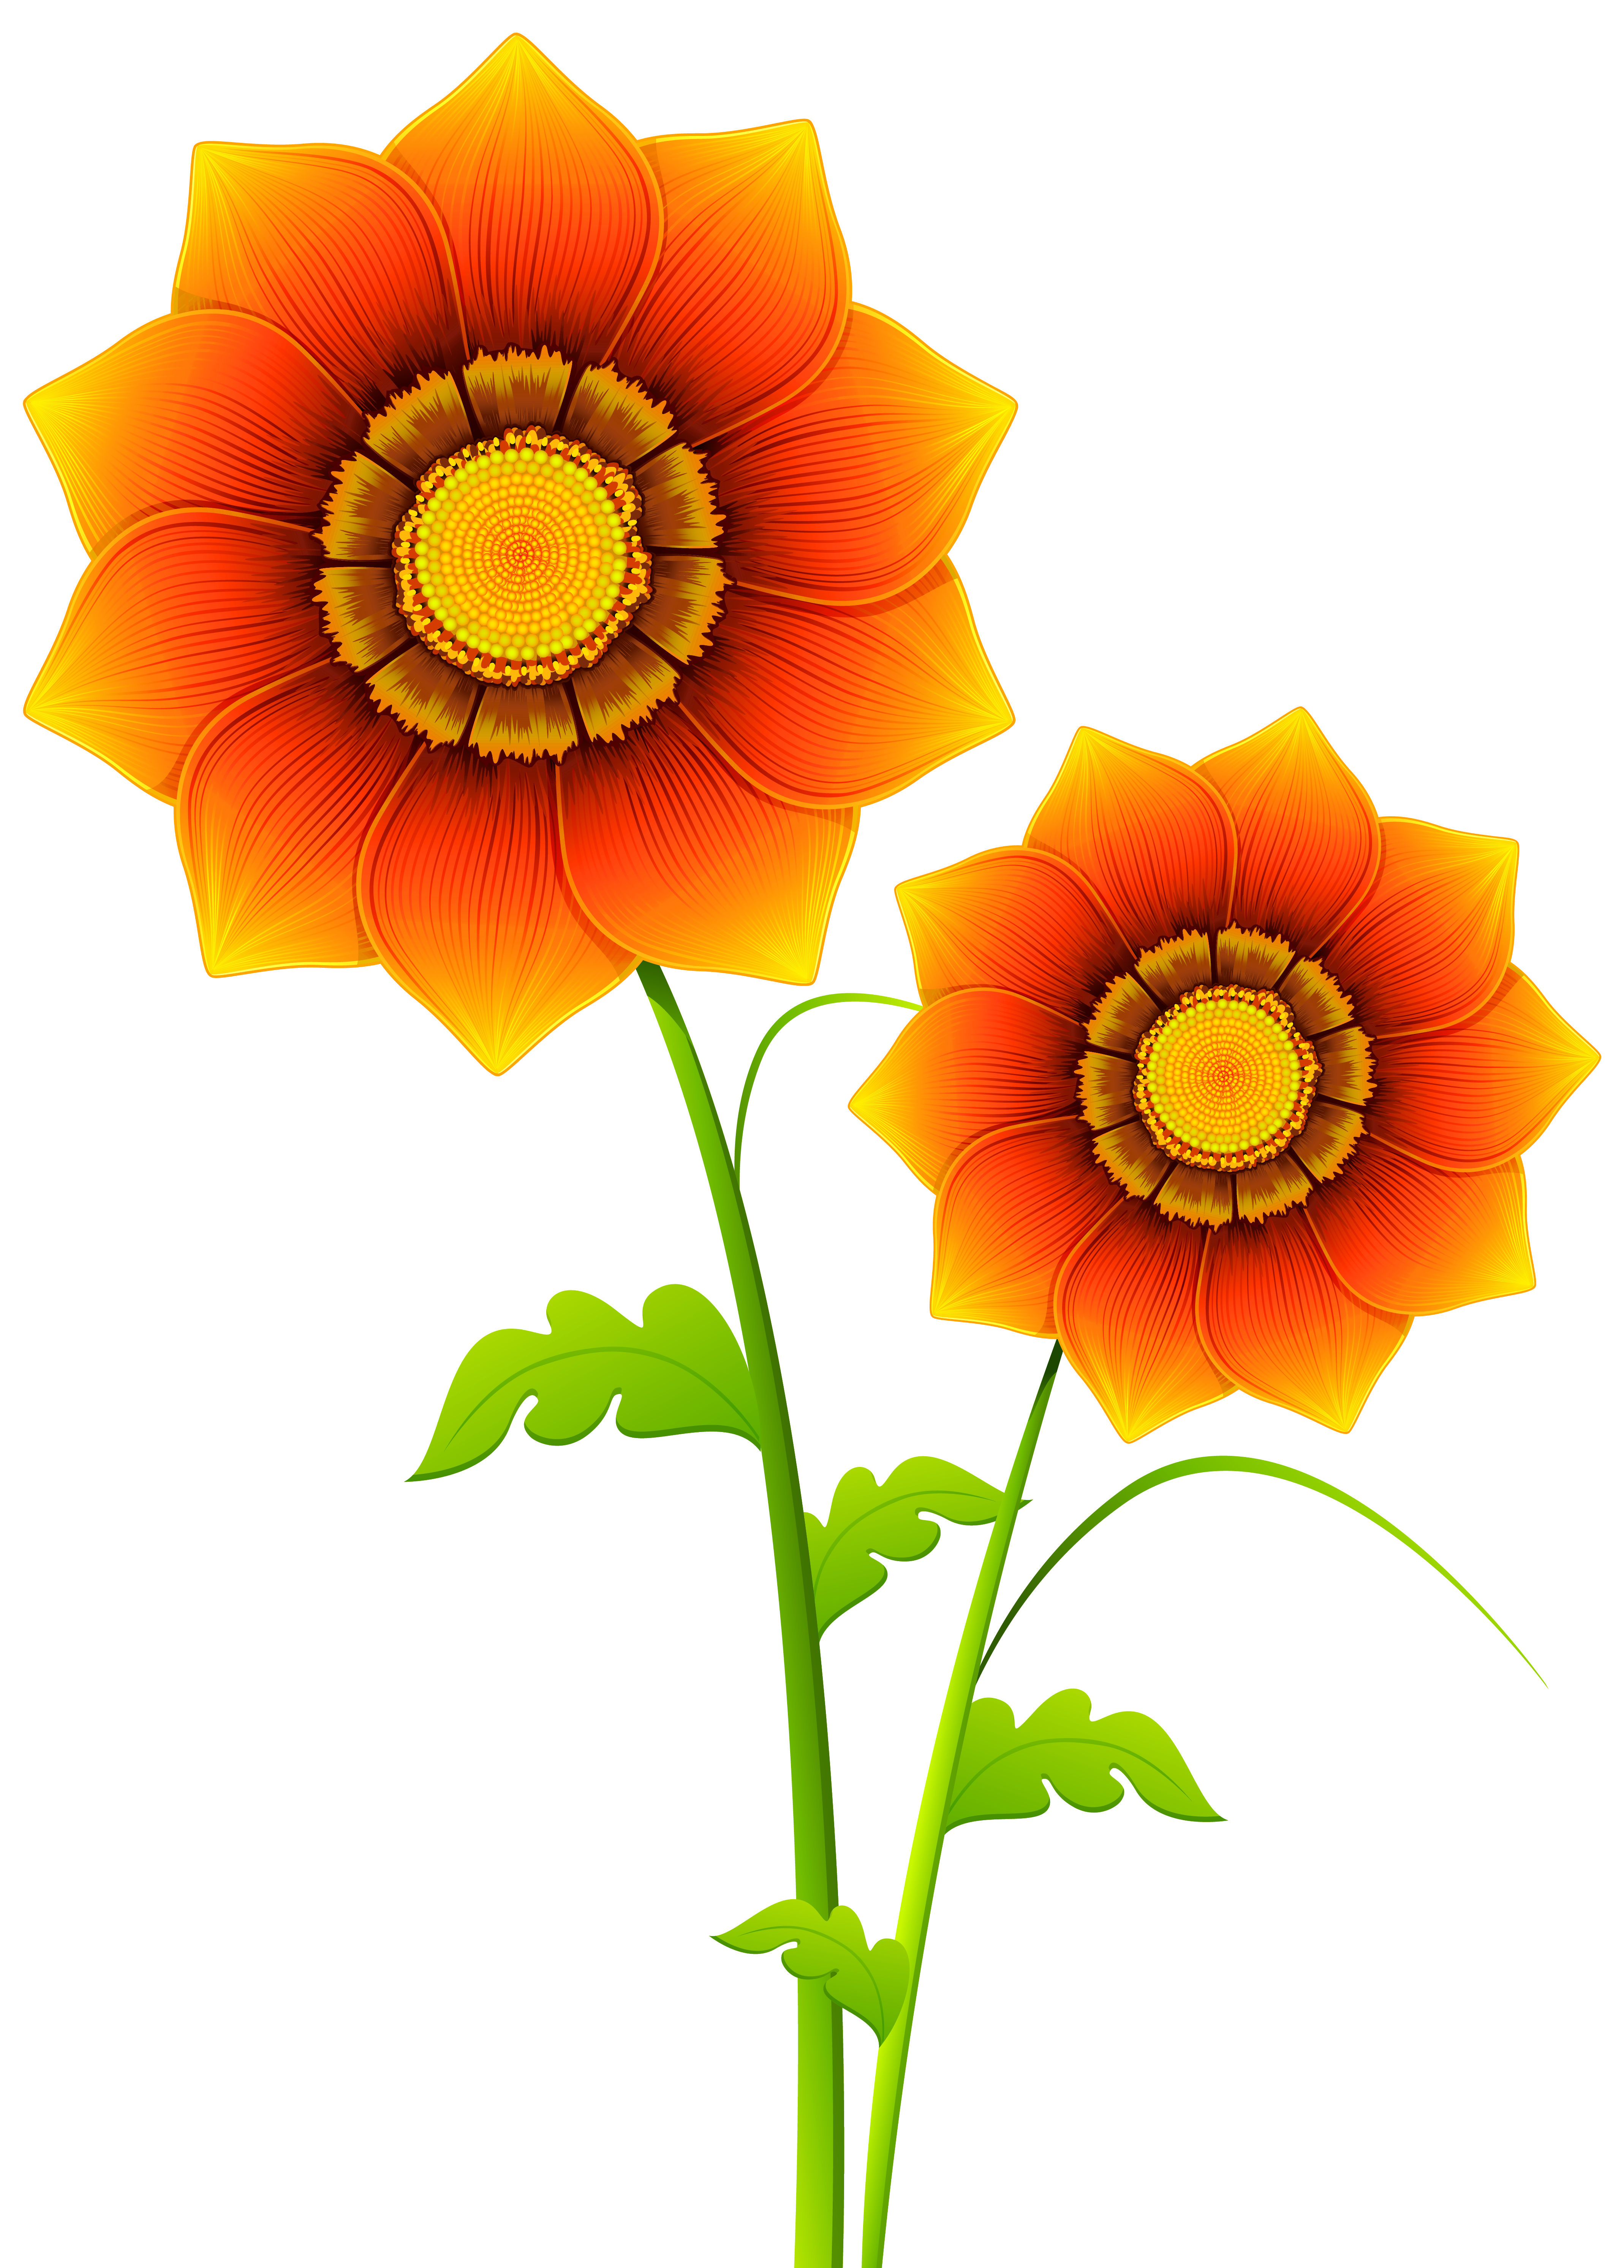 Yellow Flower clipart transparent Yopriceville full  Clipart Gallery